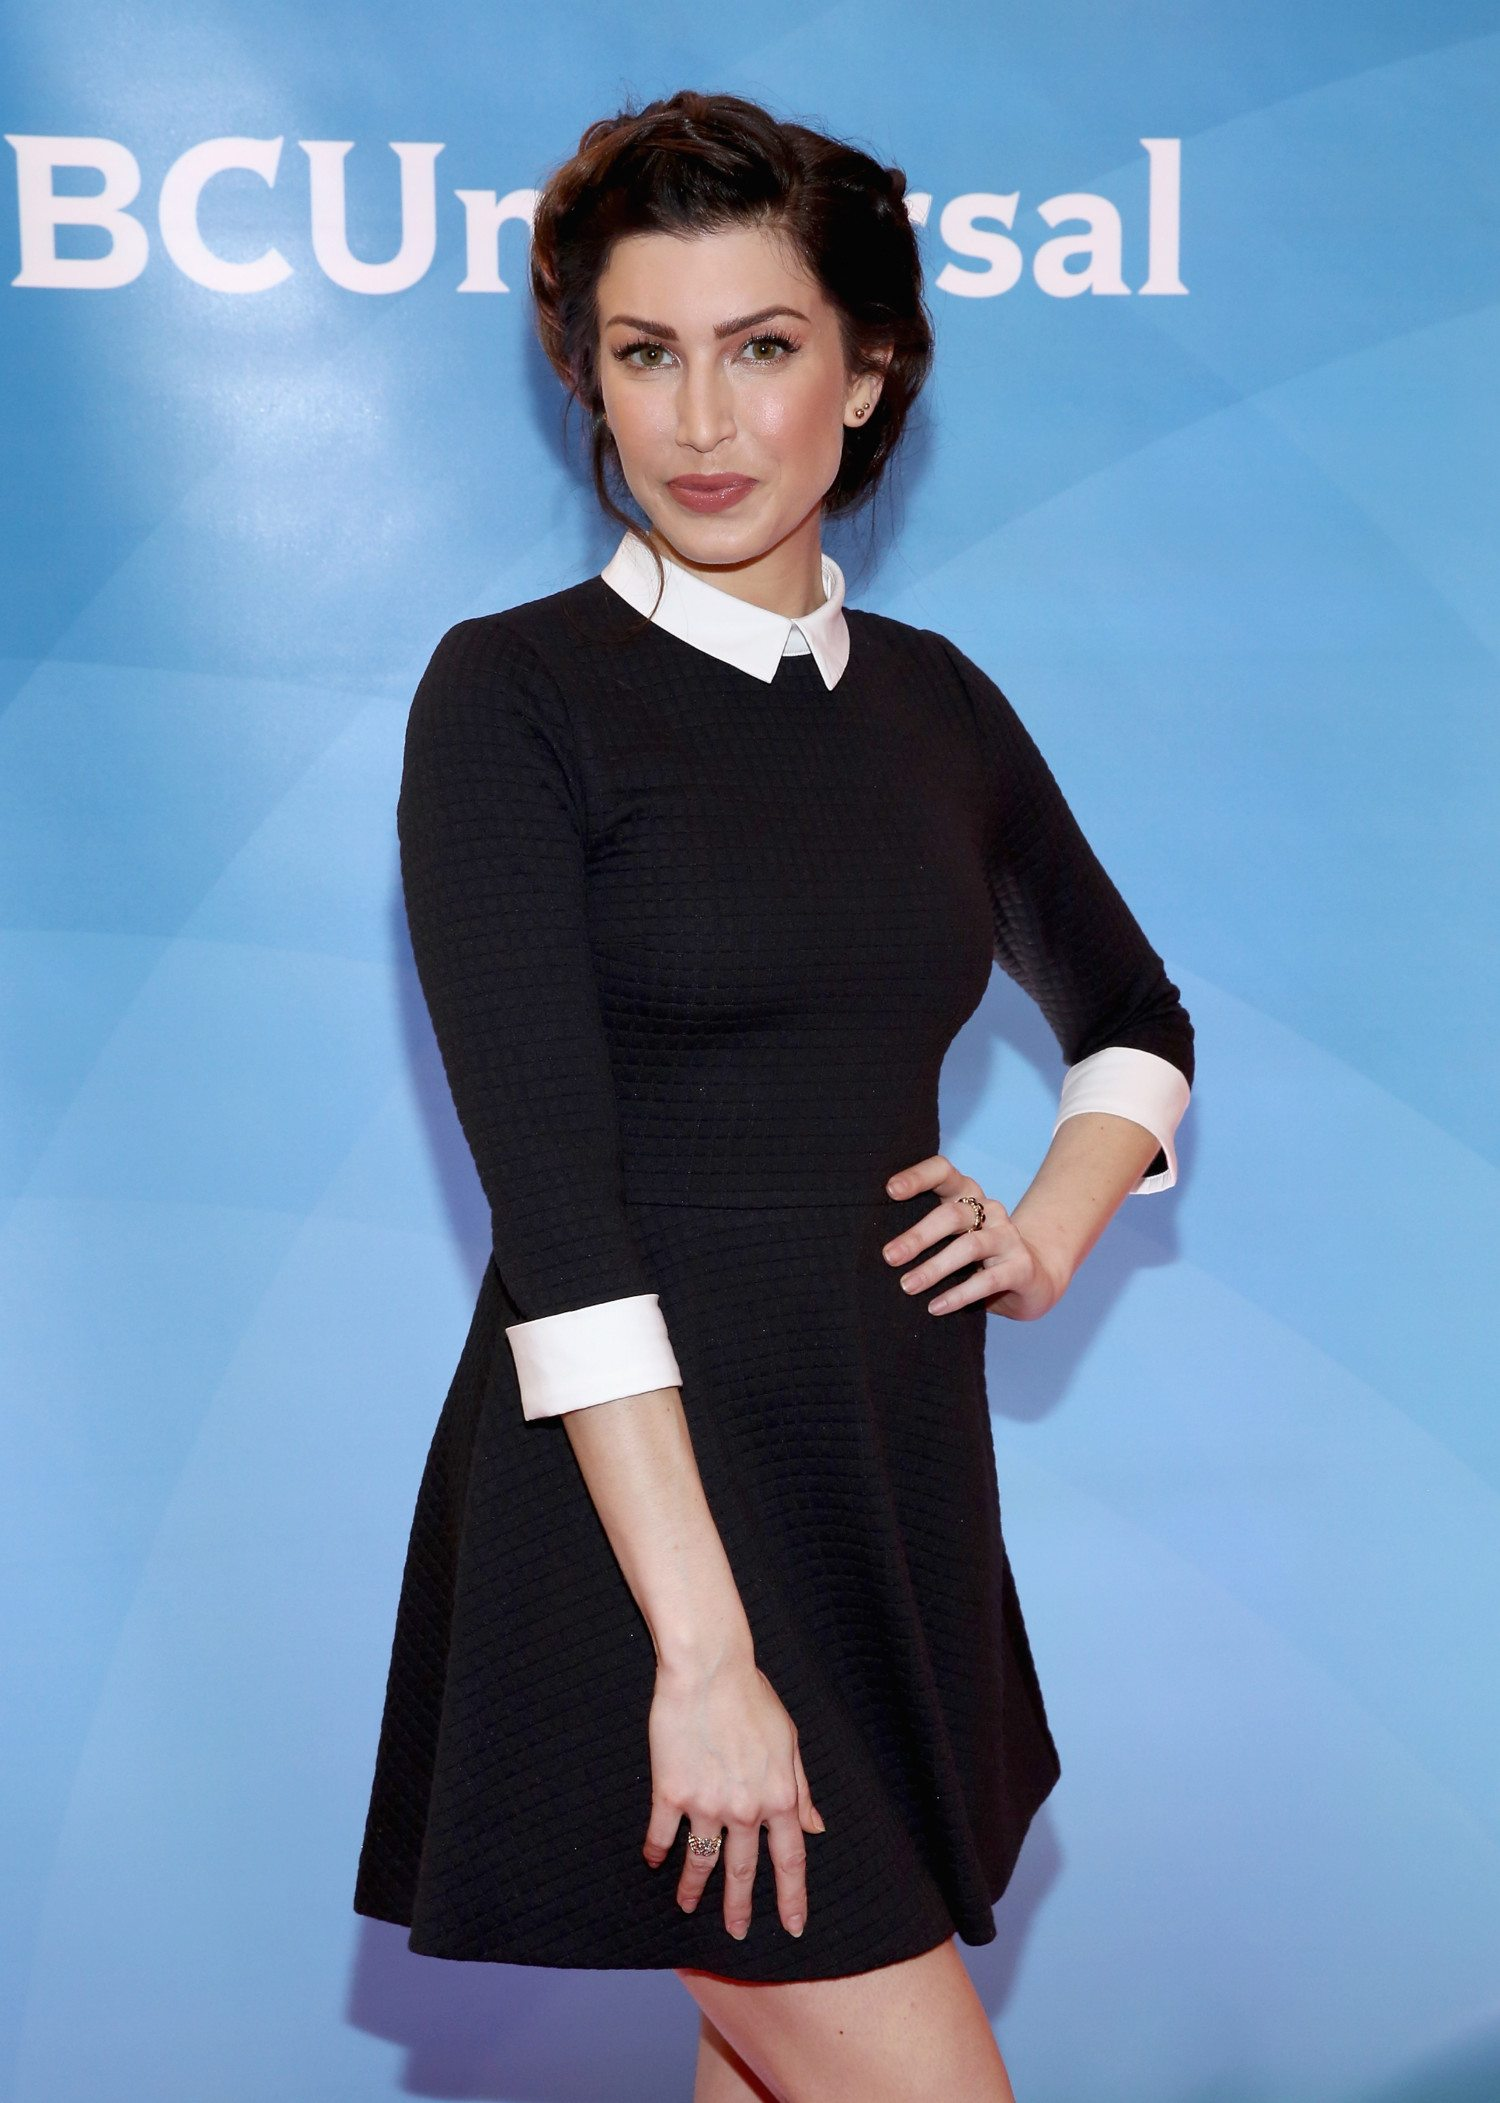 stevie ryan photo